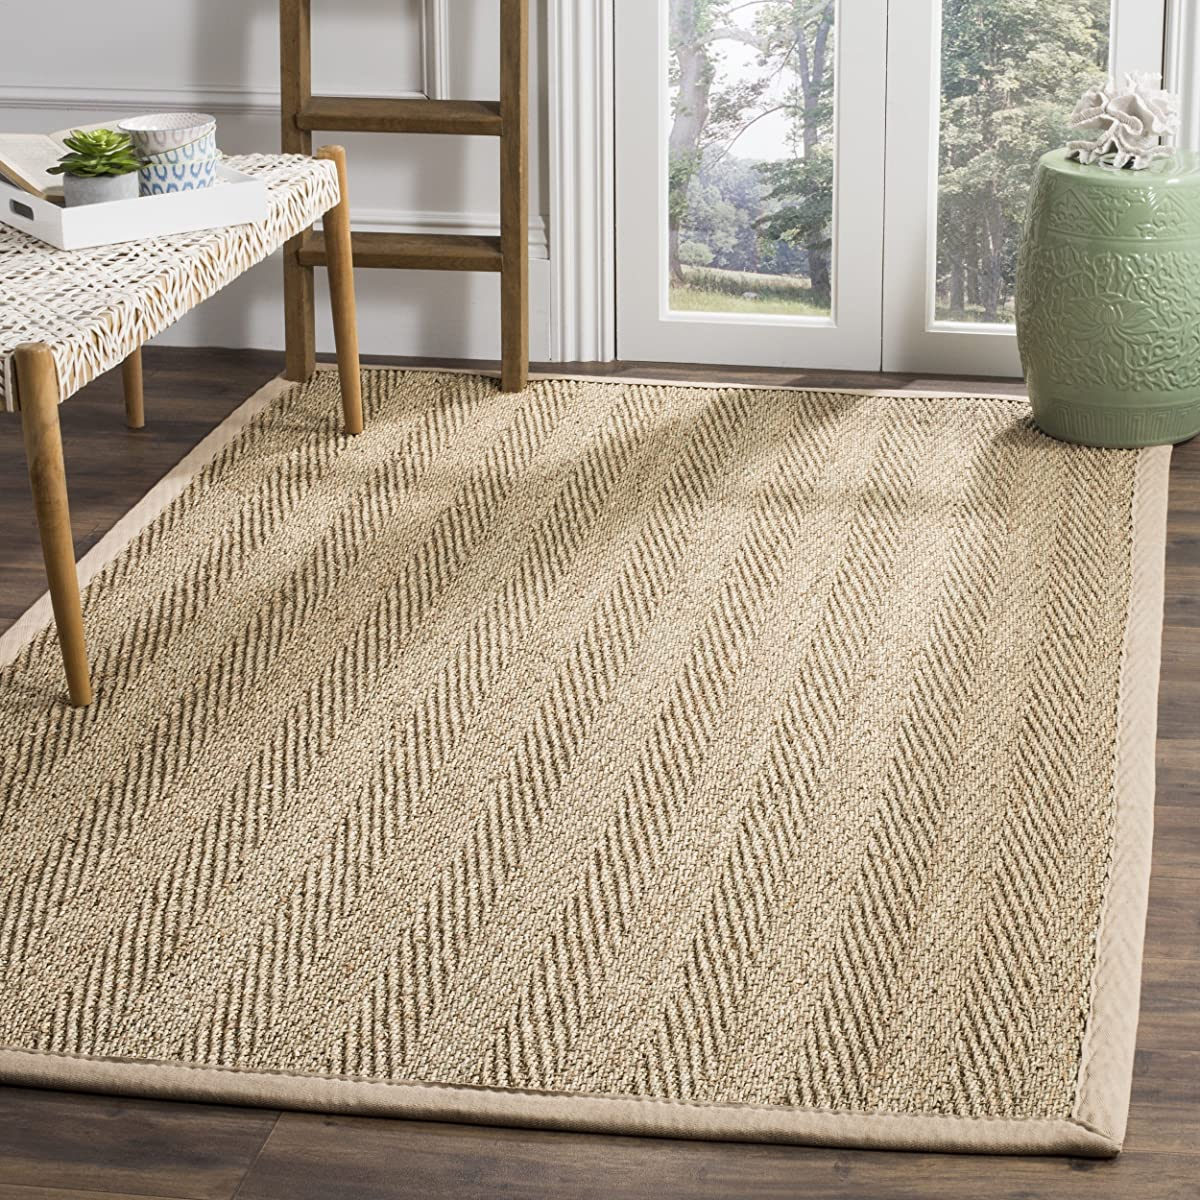 Safavieh Natural Fiber Collection NF115A Herringbone Natural and Beige Seagrass Area Rug (5 x 8)